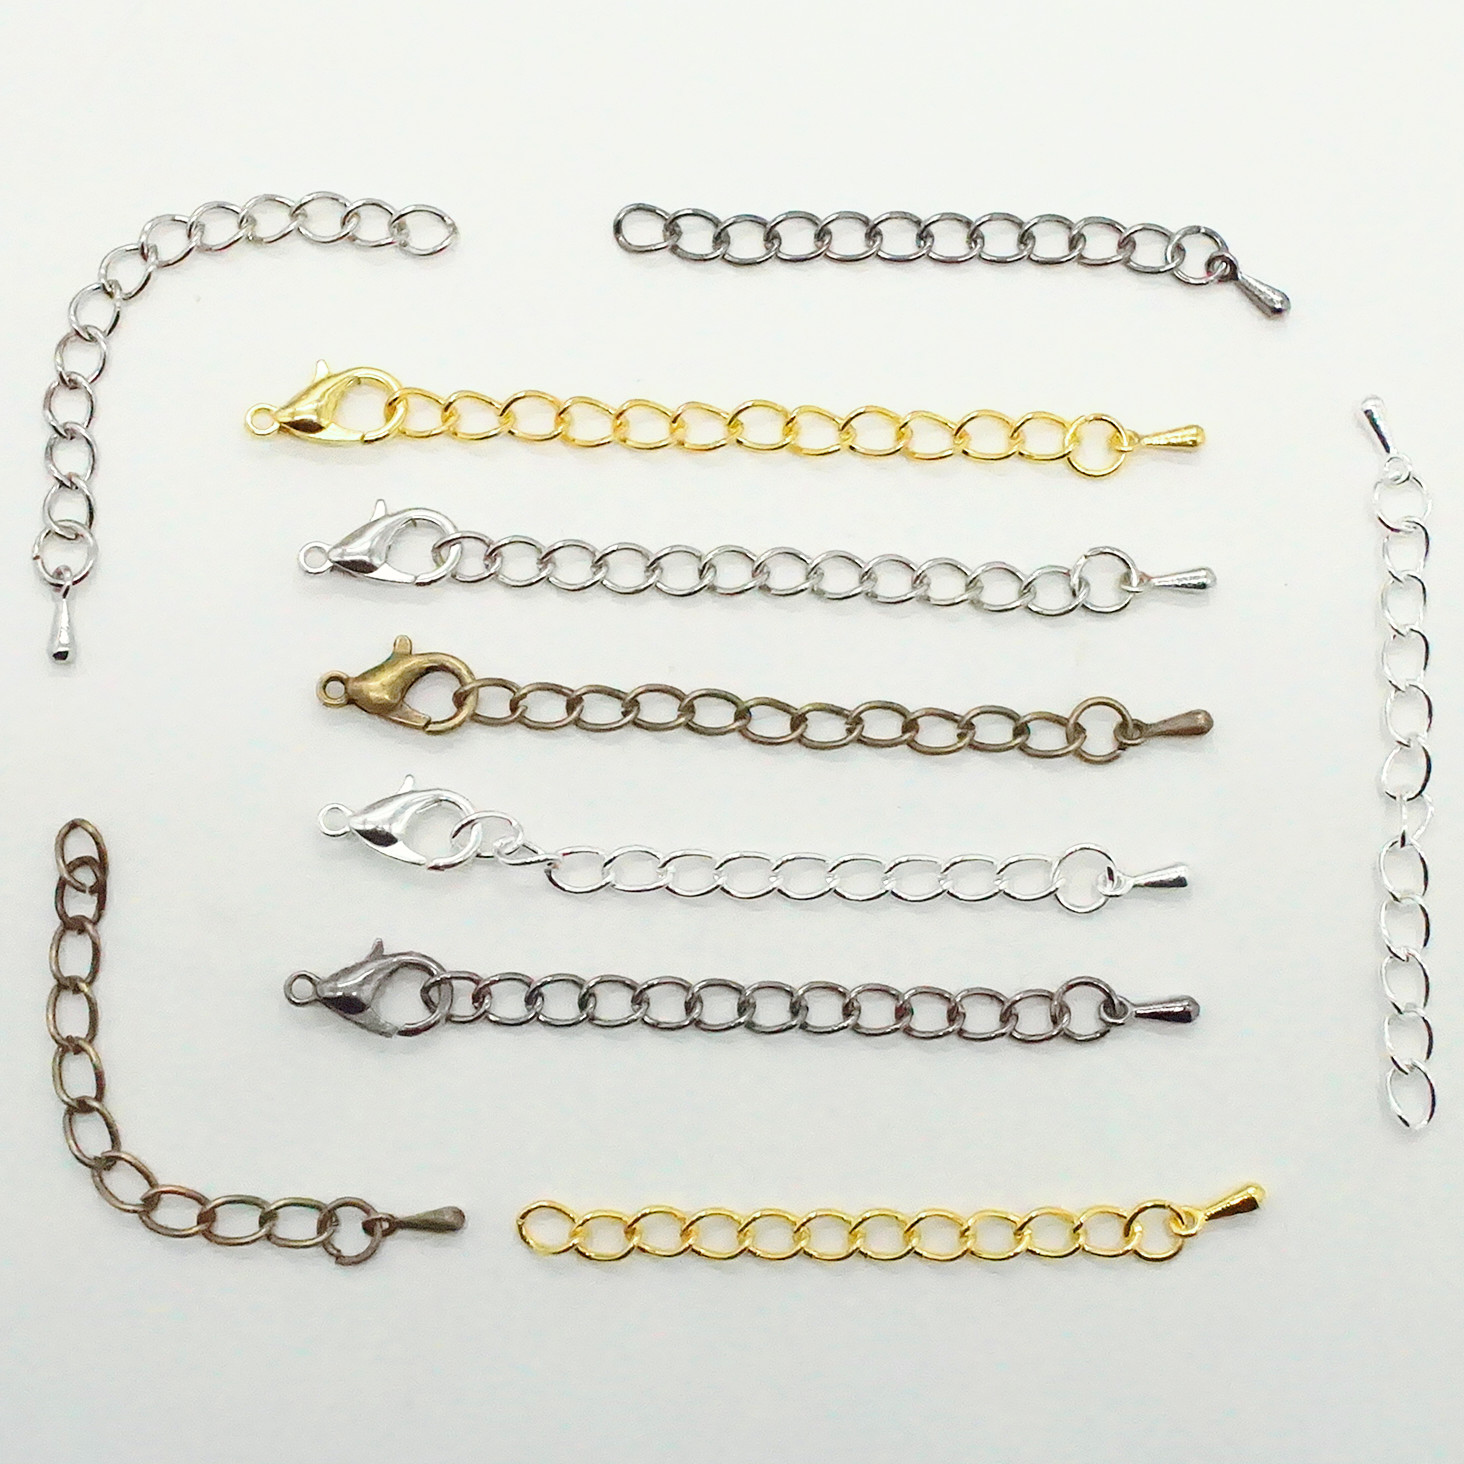 20pcs/lot 5cm 7cm Tone Extended Extension Tail Chain Lobster Clasps Connector For DIY Jewelry Making Findings Bracelet Necklace